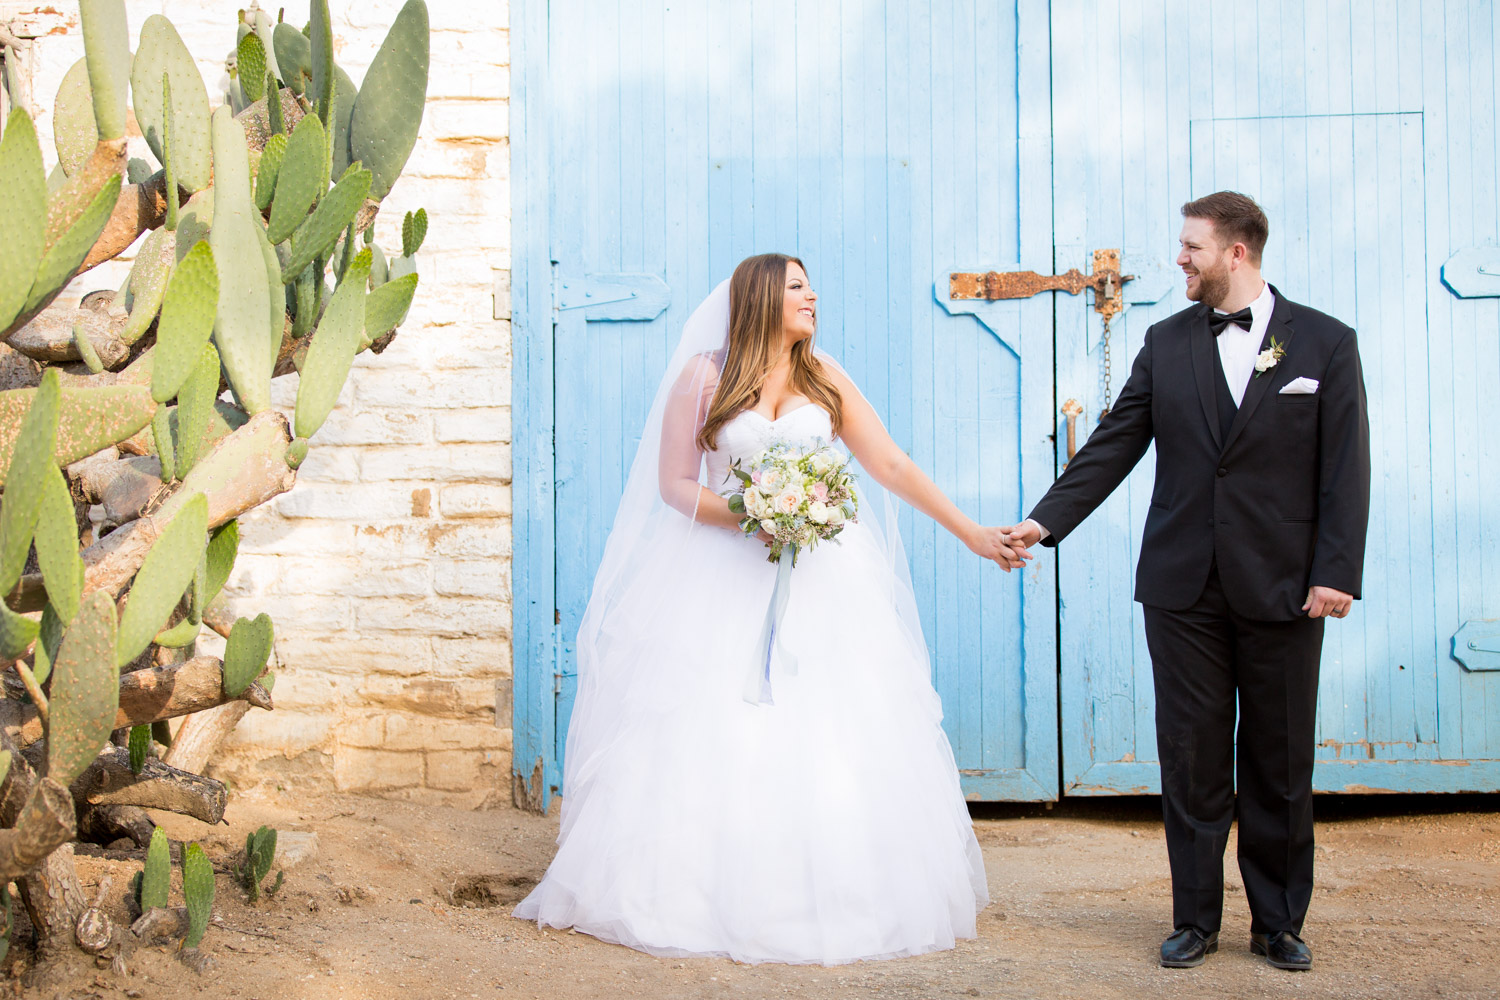 Bride and groom portrait in front of the blue barn doors at Leo Carrillo